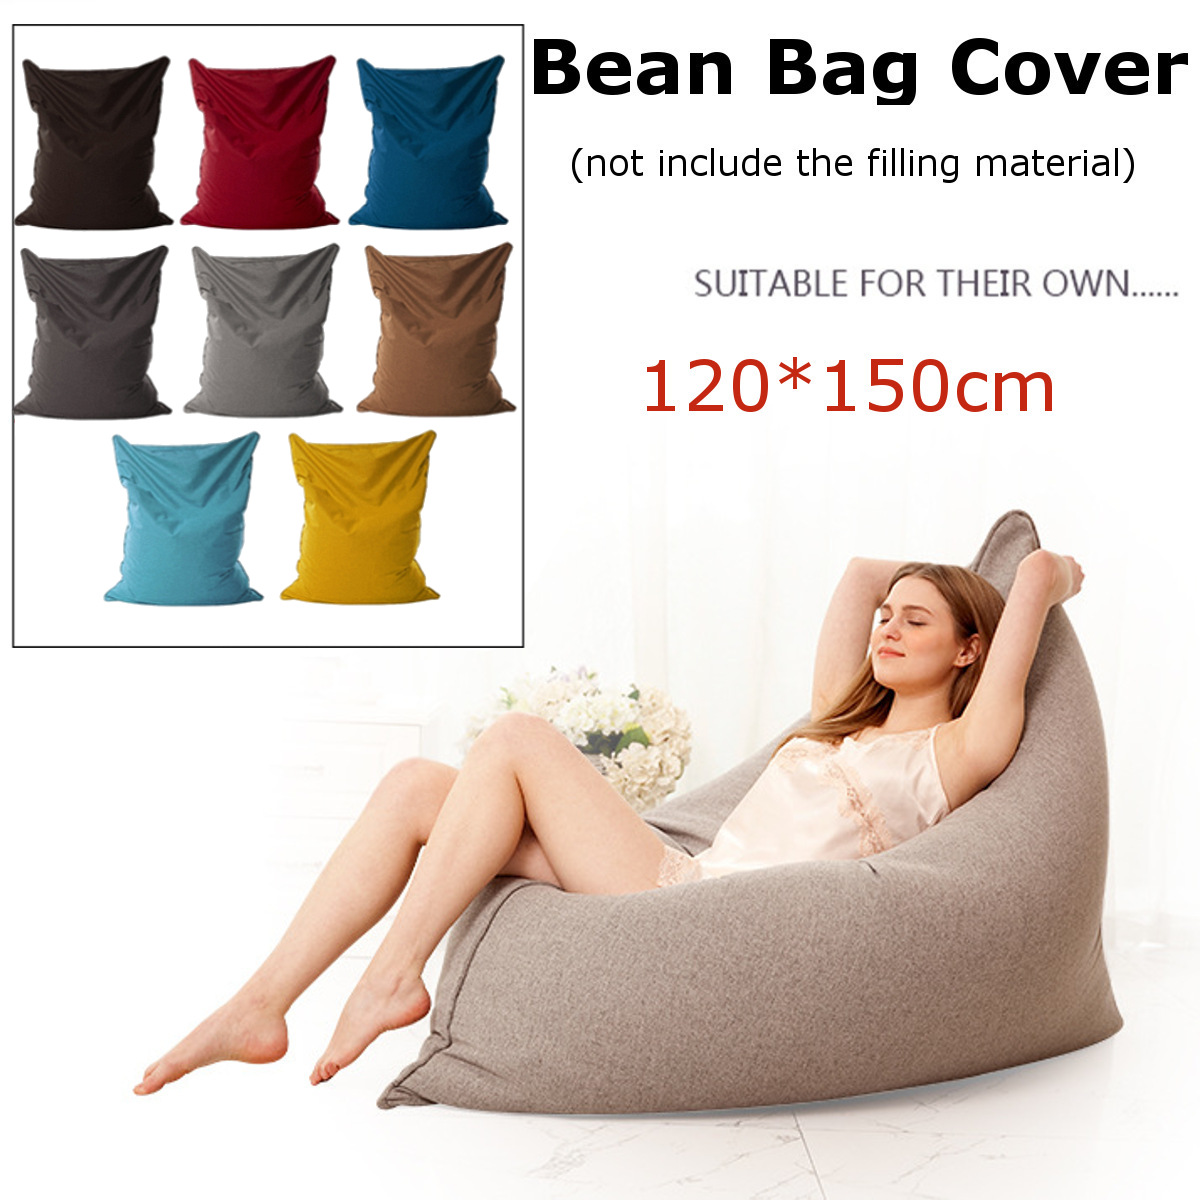 Lazy BeanBag Sofas Cloth Lounger Seat Bean Bag Sofa Cover Chairs Pouf Puff Couch Tatami Living Room Furniture 150x120cmLazy BeanBag Sofas Cloth Lounger Seat Bean Bag Sofa Cover Chairs Pouf Puff Couch Tatami Living Room Furniture 150x120cm